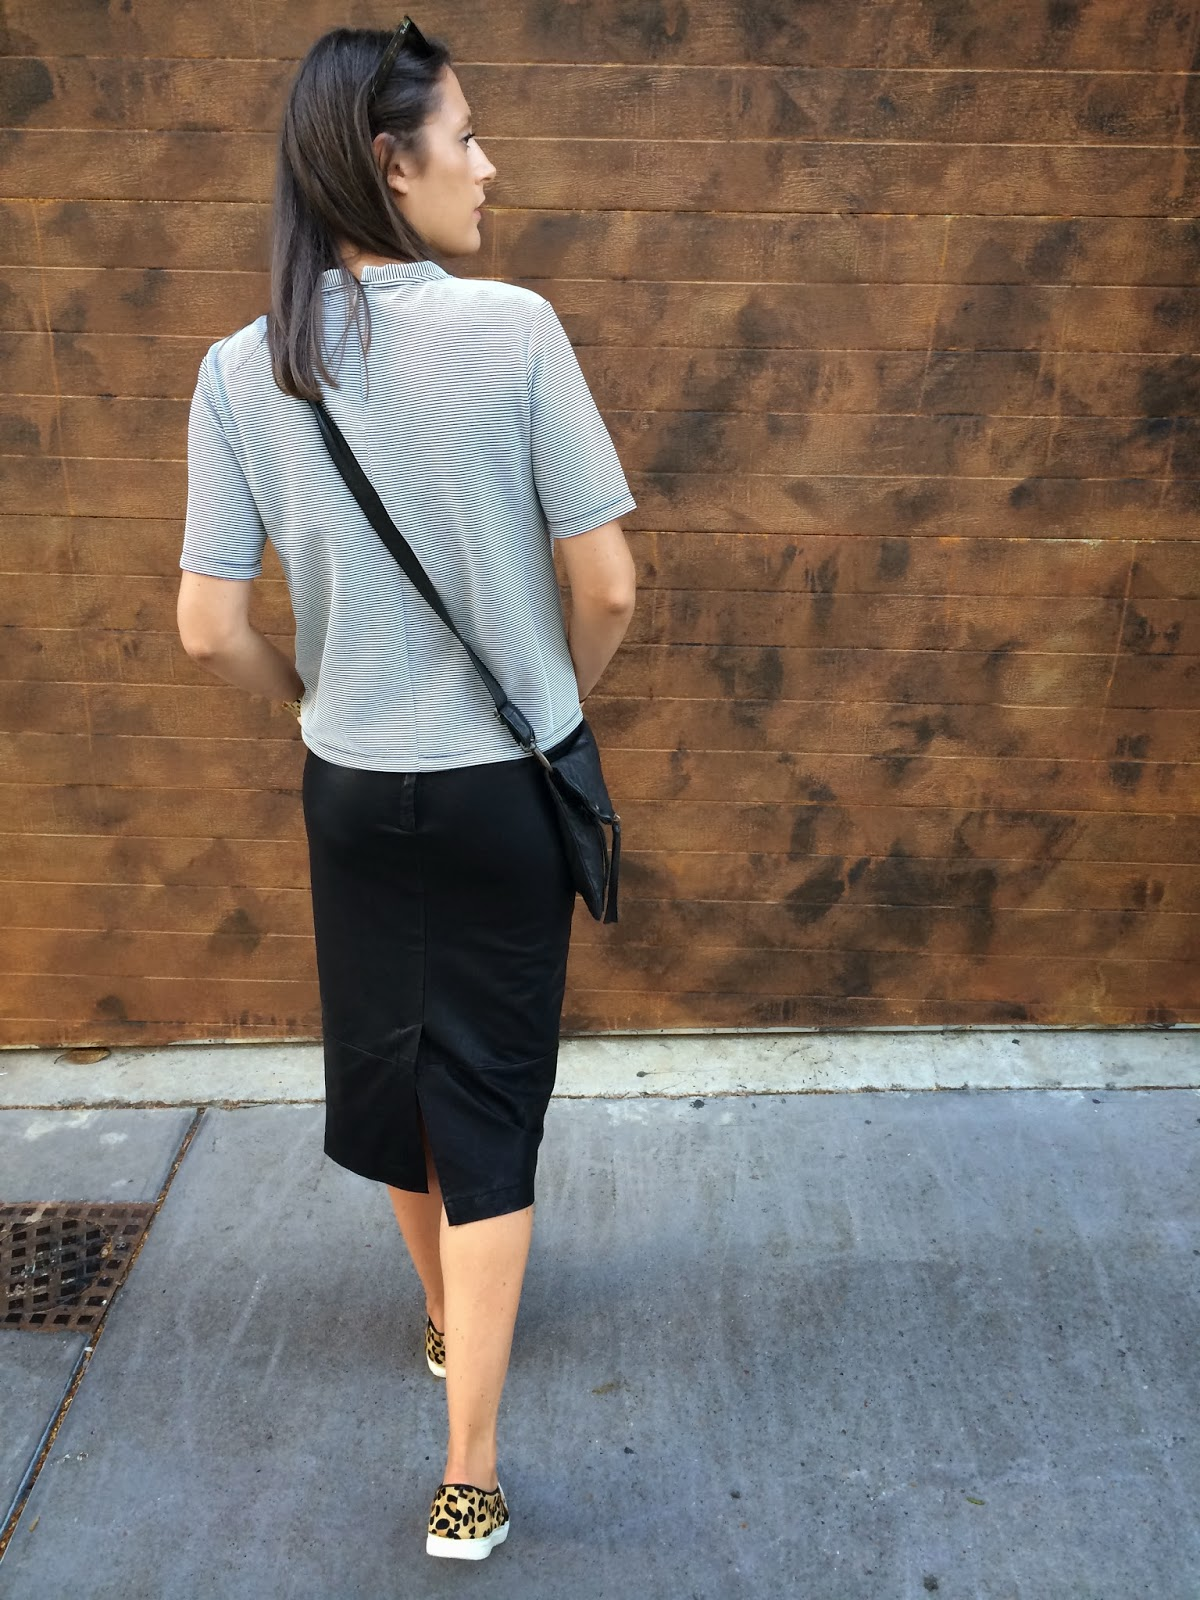 Sportsgirl-leather-roxanne-midi-skirt-and-seed-mason-sneakerr